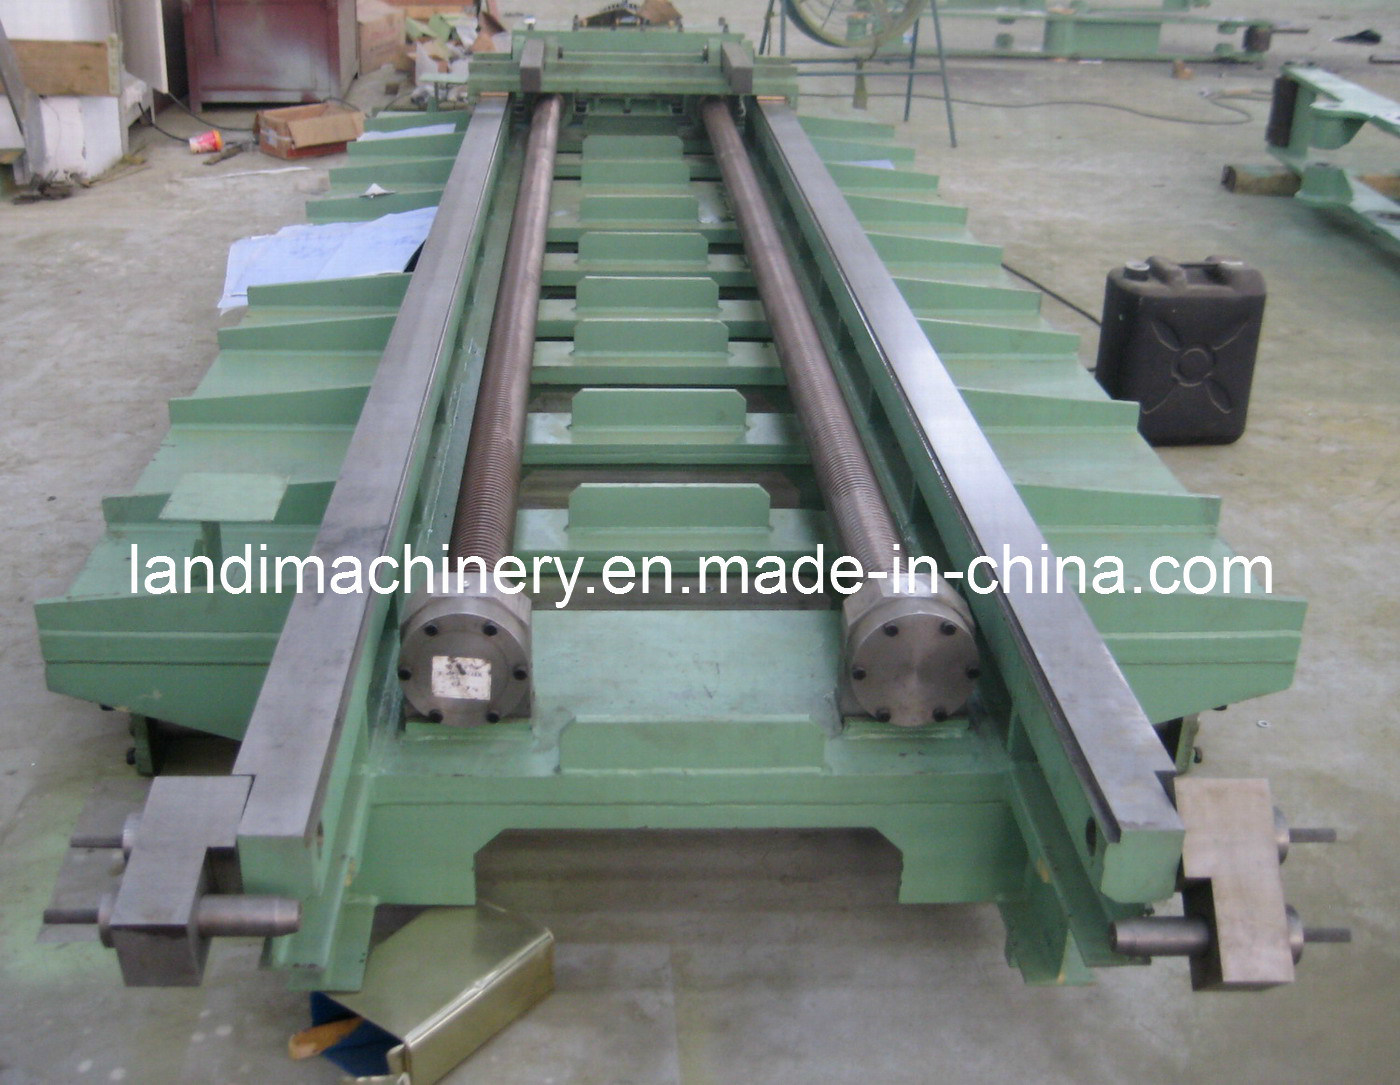 Metallurgy Machinery Steel Structure Parts